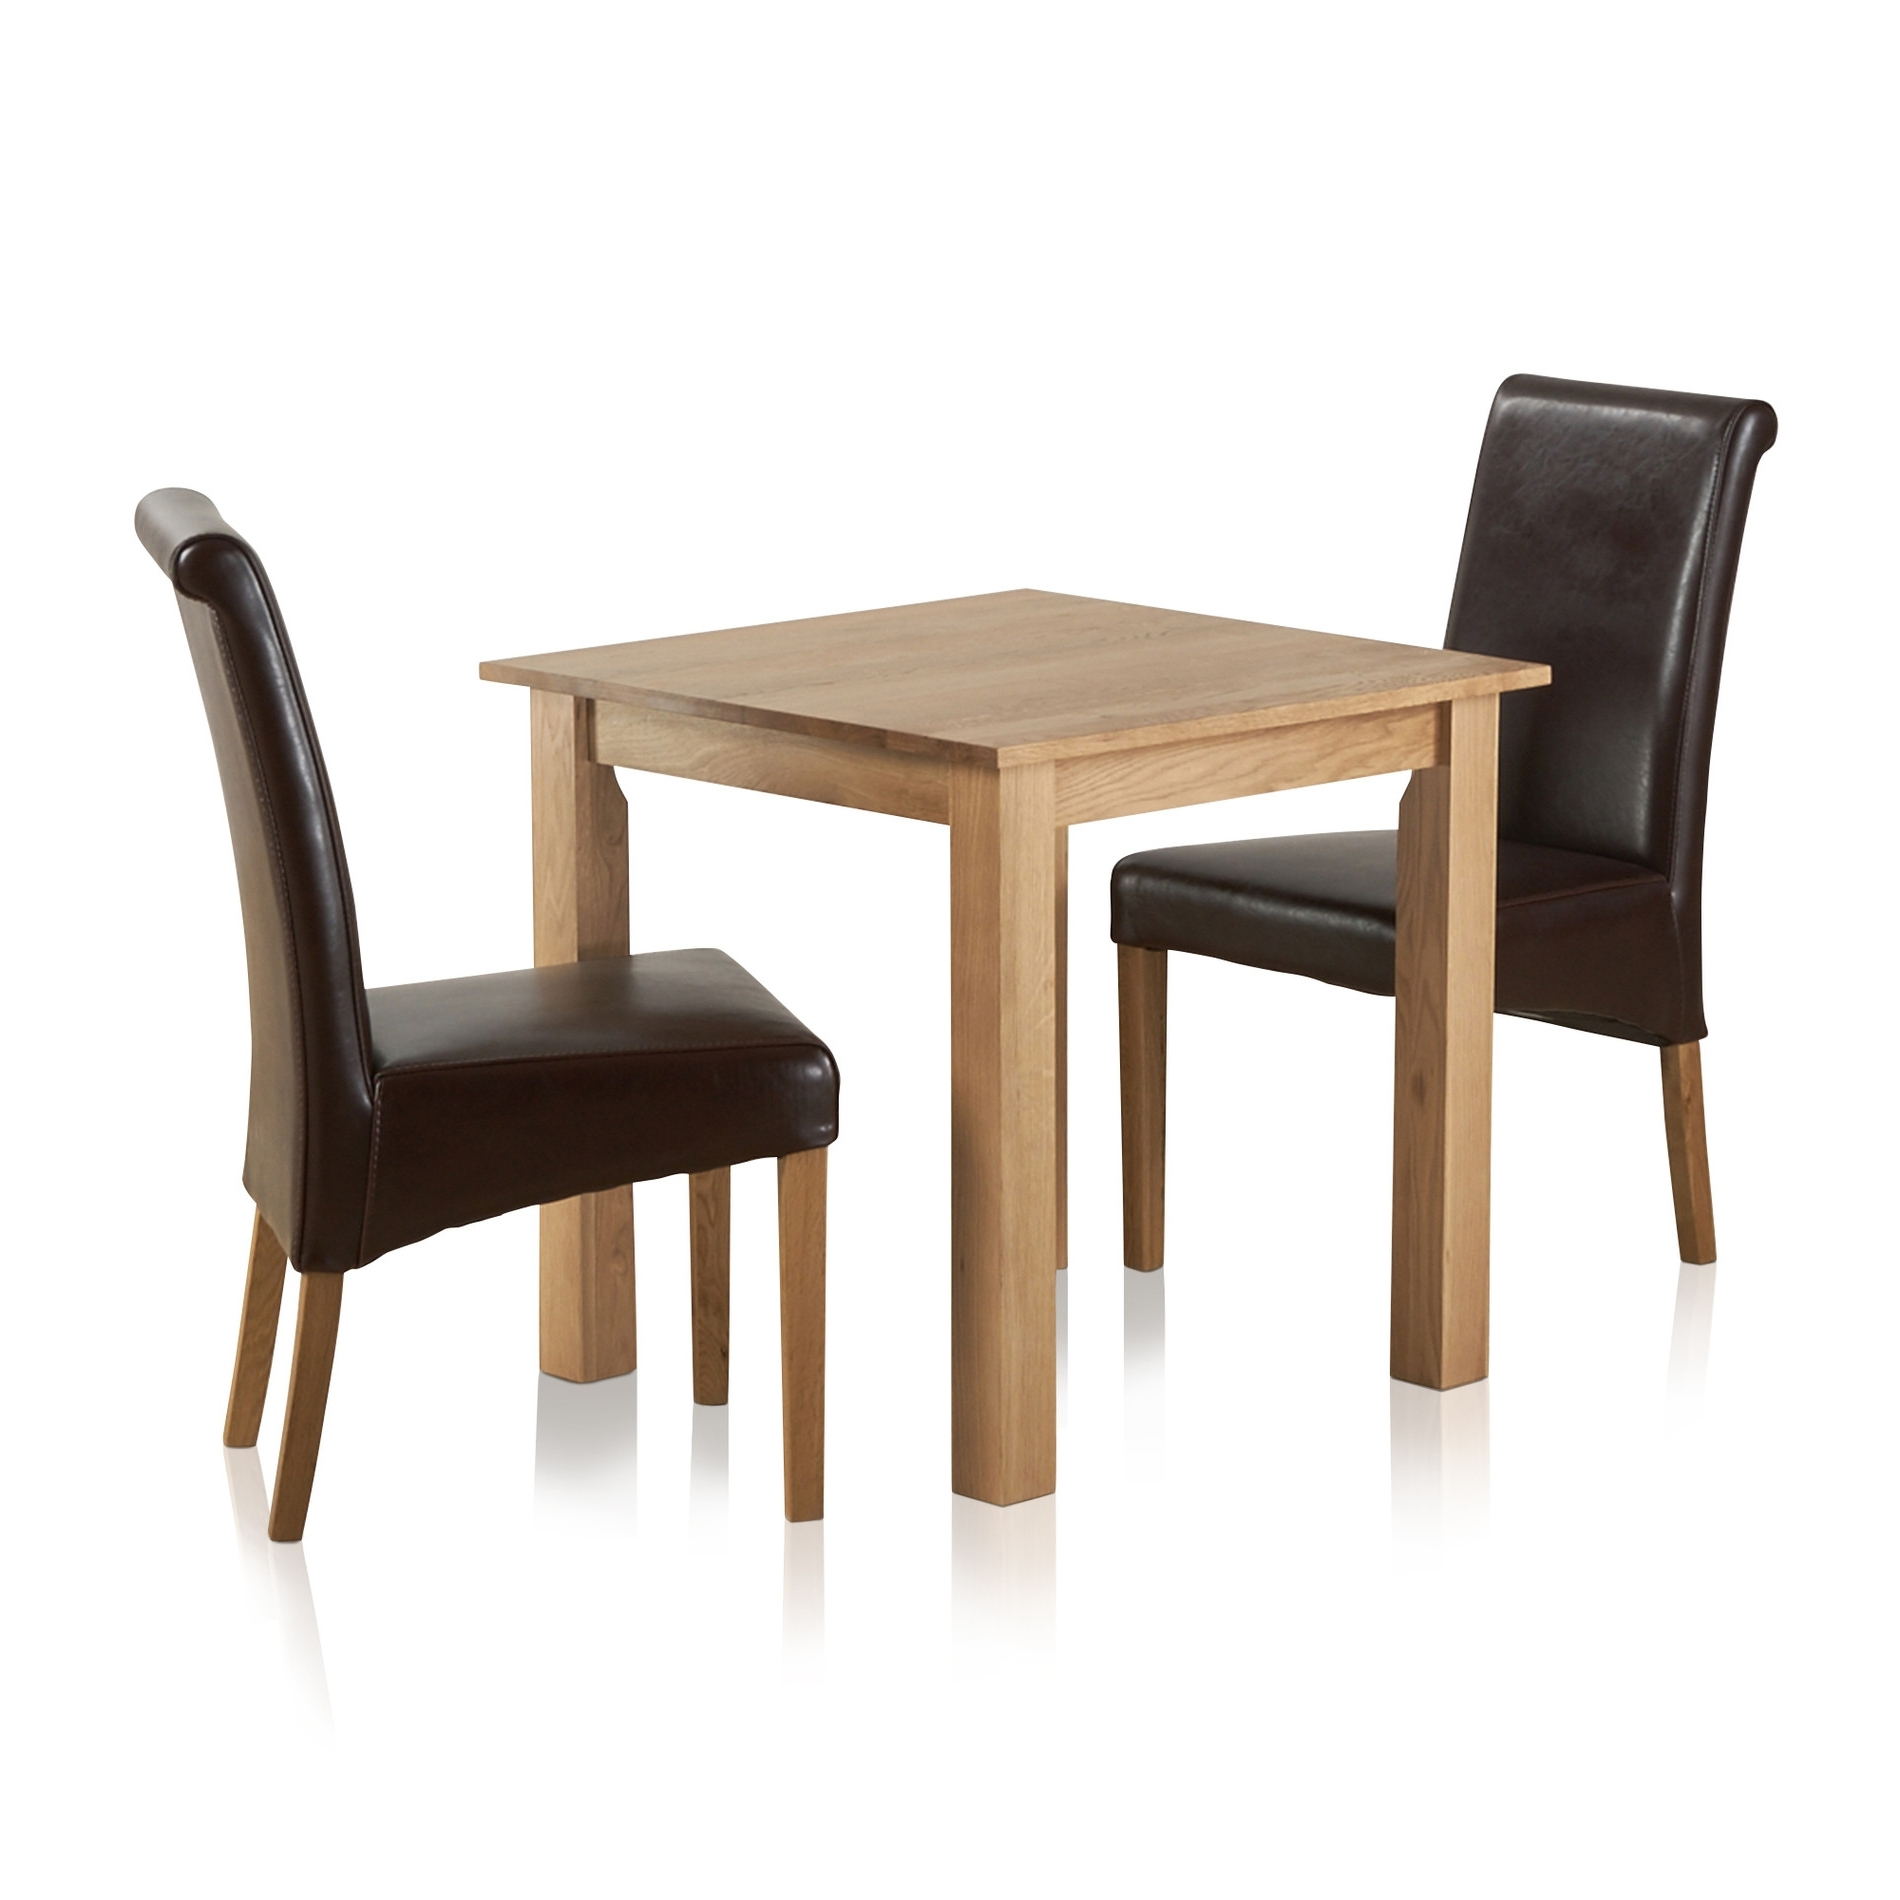 Hudson Dining Tables And Chairs in Most Recent Hudson Dining Set In Natural Oak - Table + 2 Leather Chairs